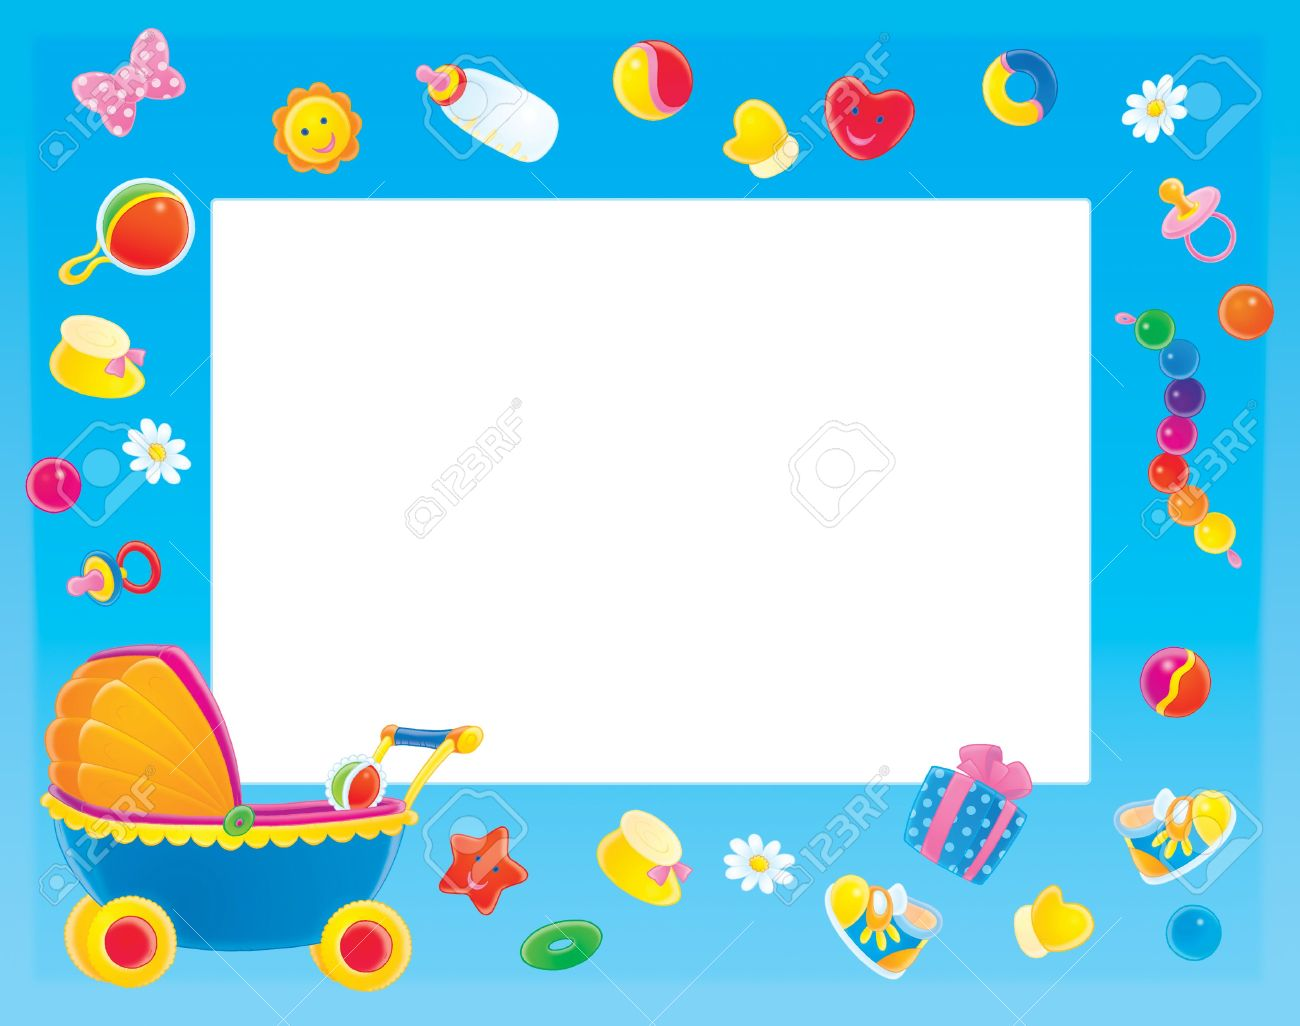 Baby clipart frame Clipart Border clip Shower coolclipart